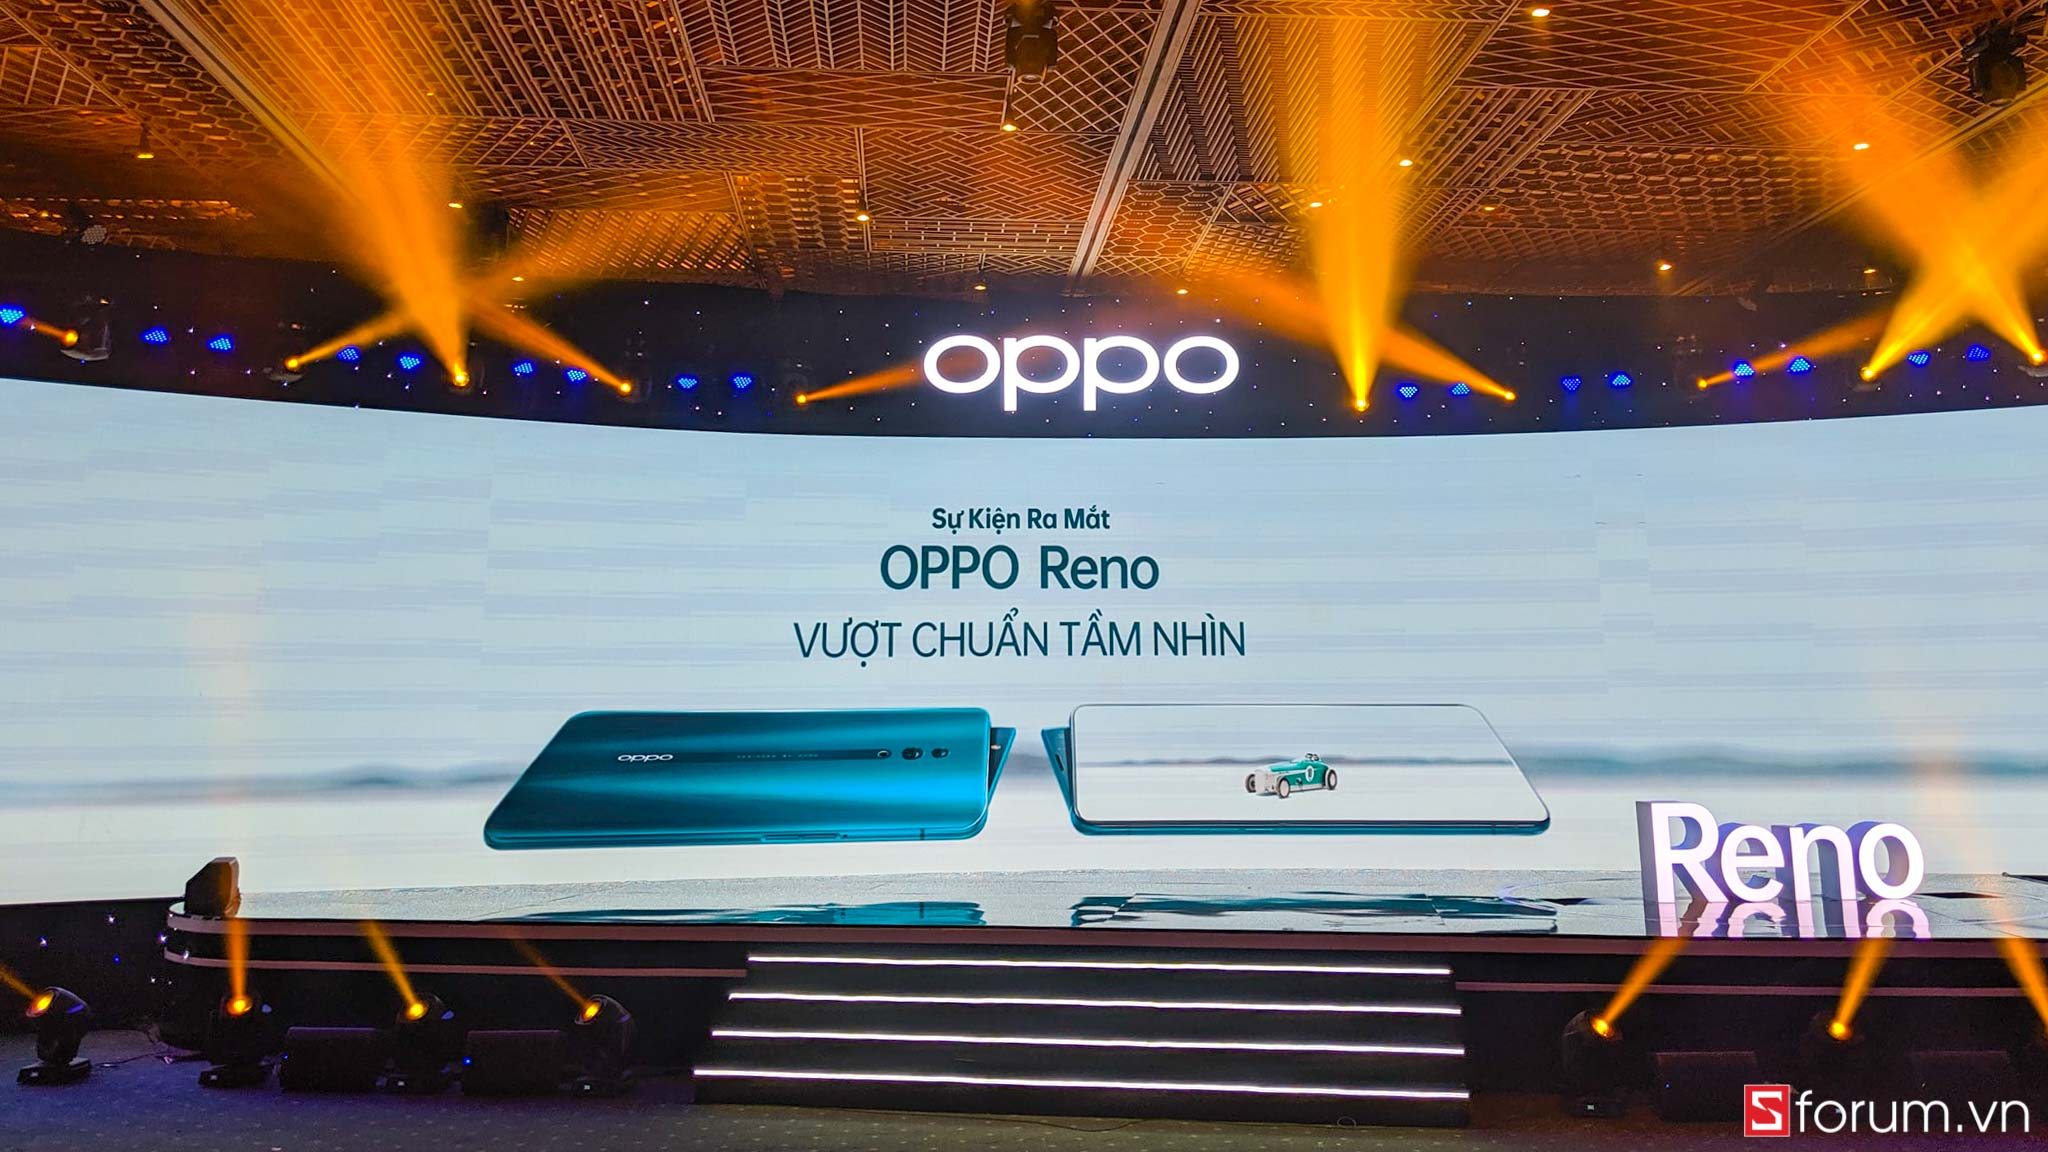 Sforum - Latest technology information page oppo-reno-1-2 OPPO Reno and Reno 10x zoom launch in Vietnam: Design